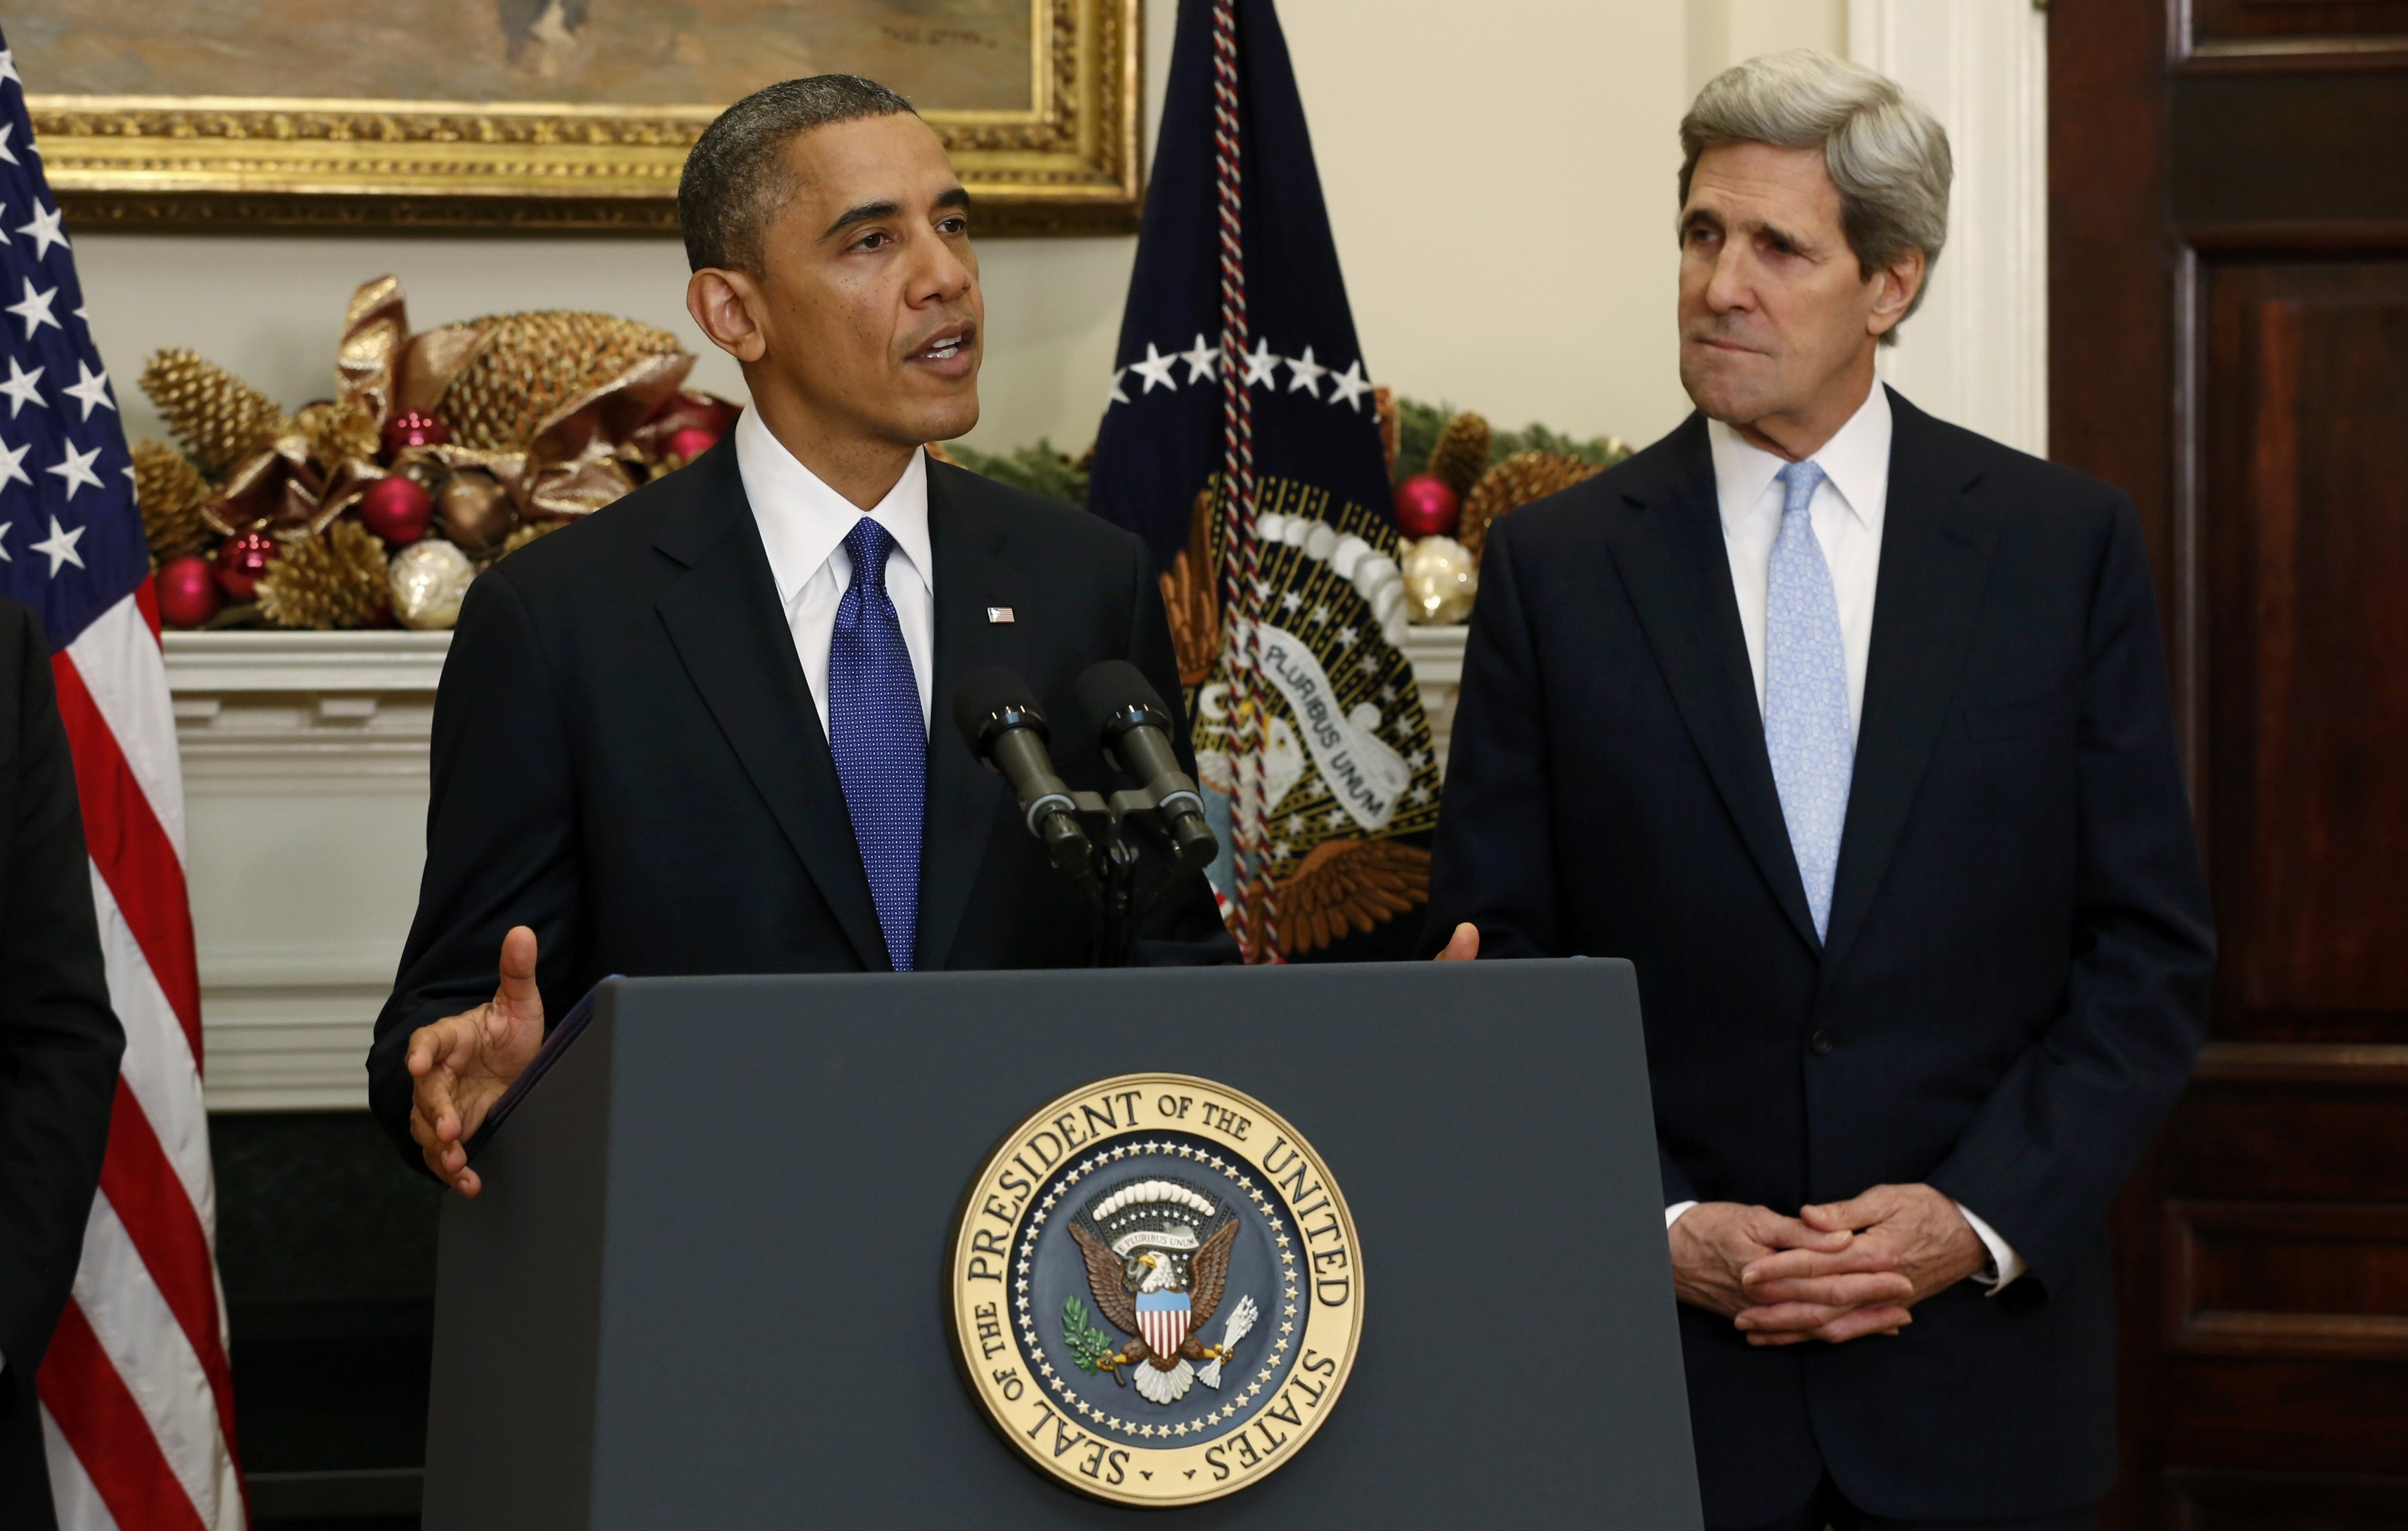 President Barack Obama announces the nomination of Sen. John Kerry (D-MA) as secretary of state. (Kevin Lamarque/Reuters)